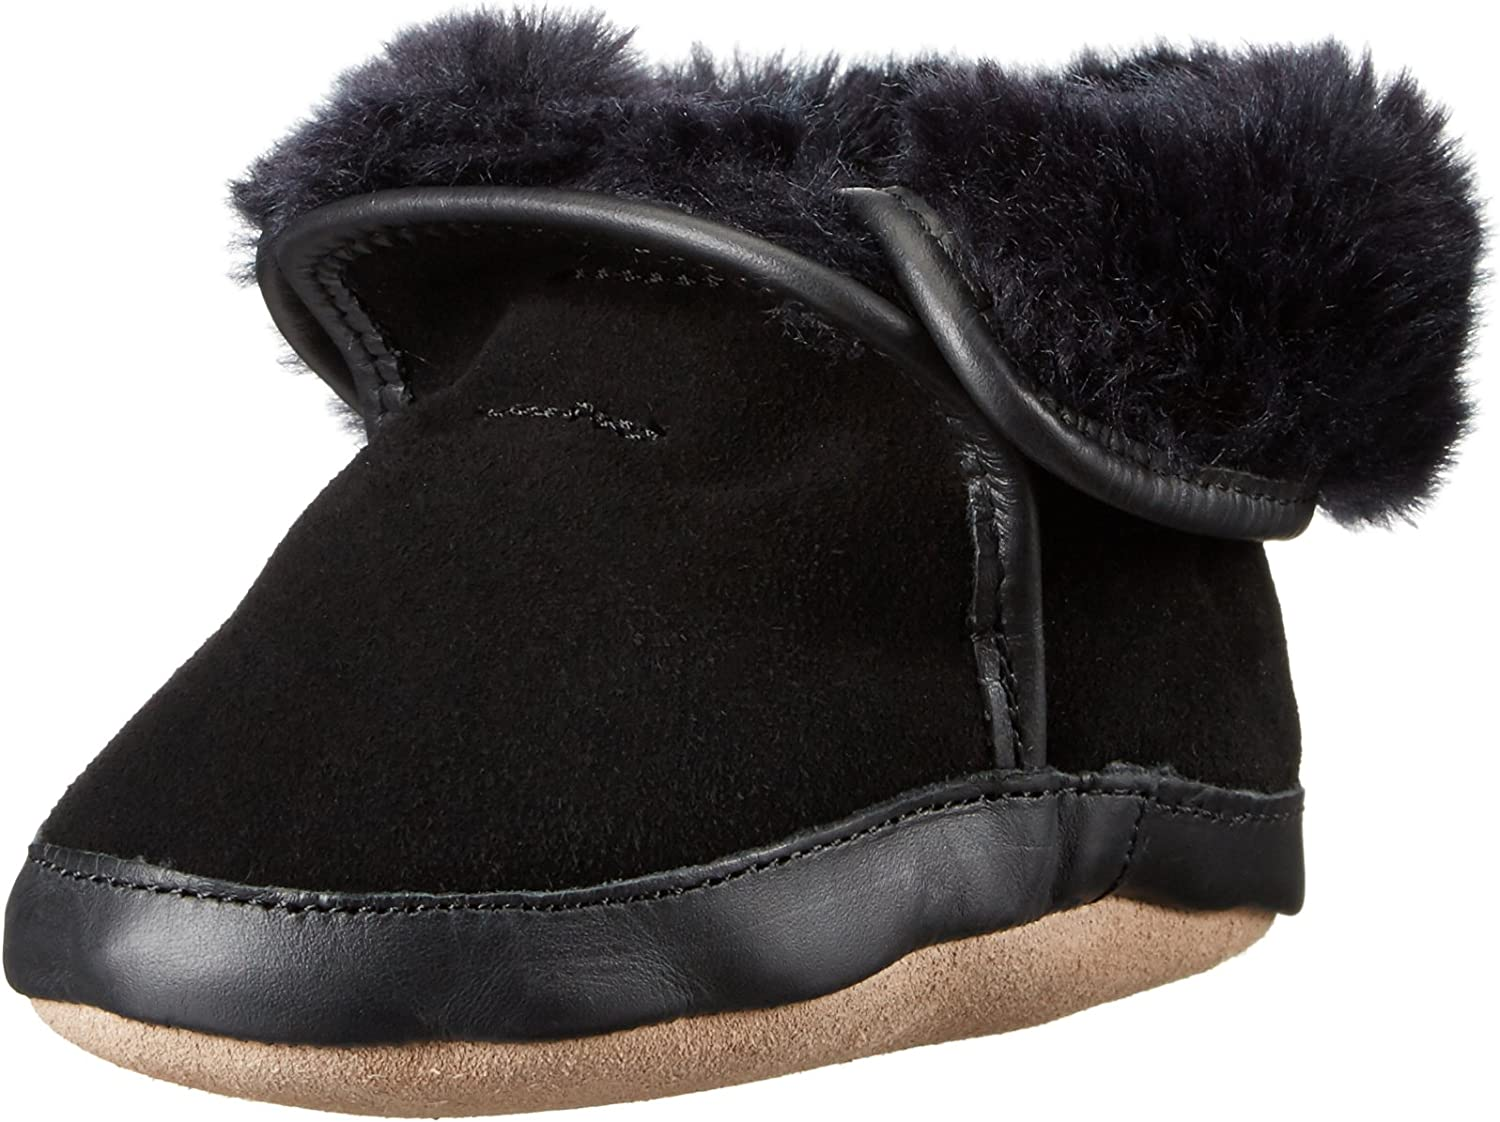 Robeez Cozy Ankle Baby Boots